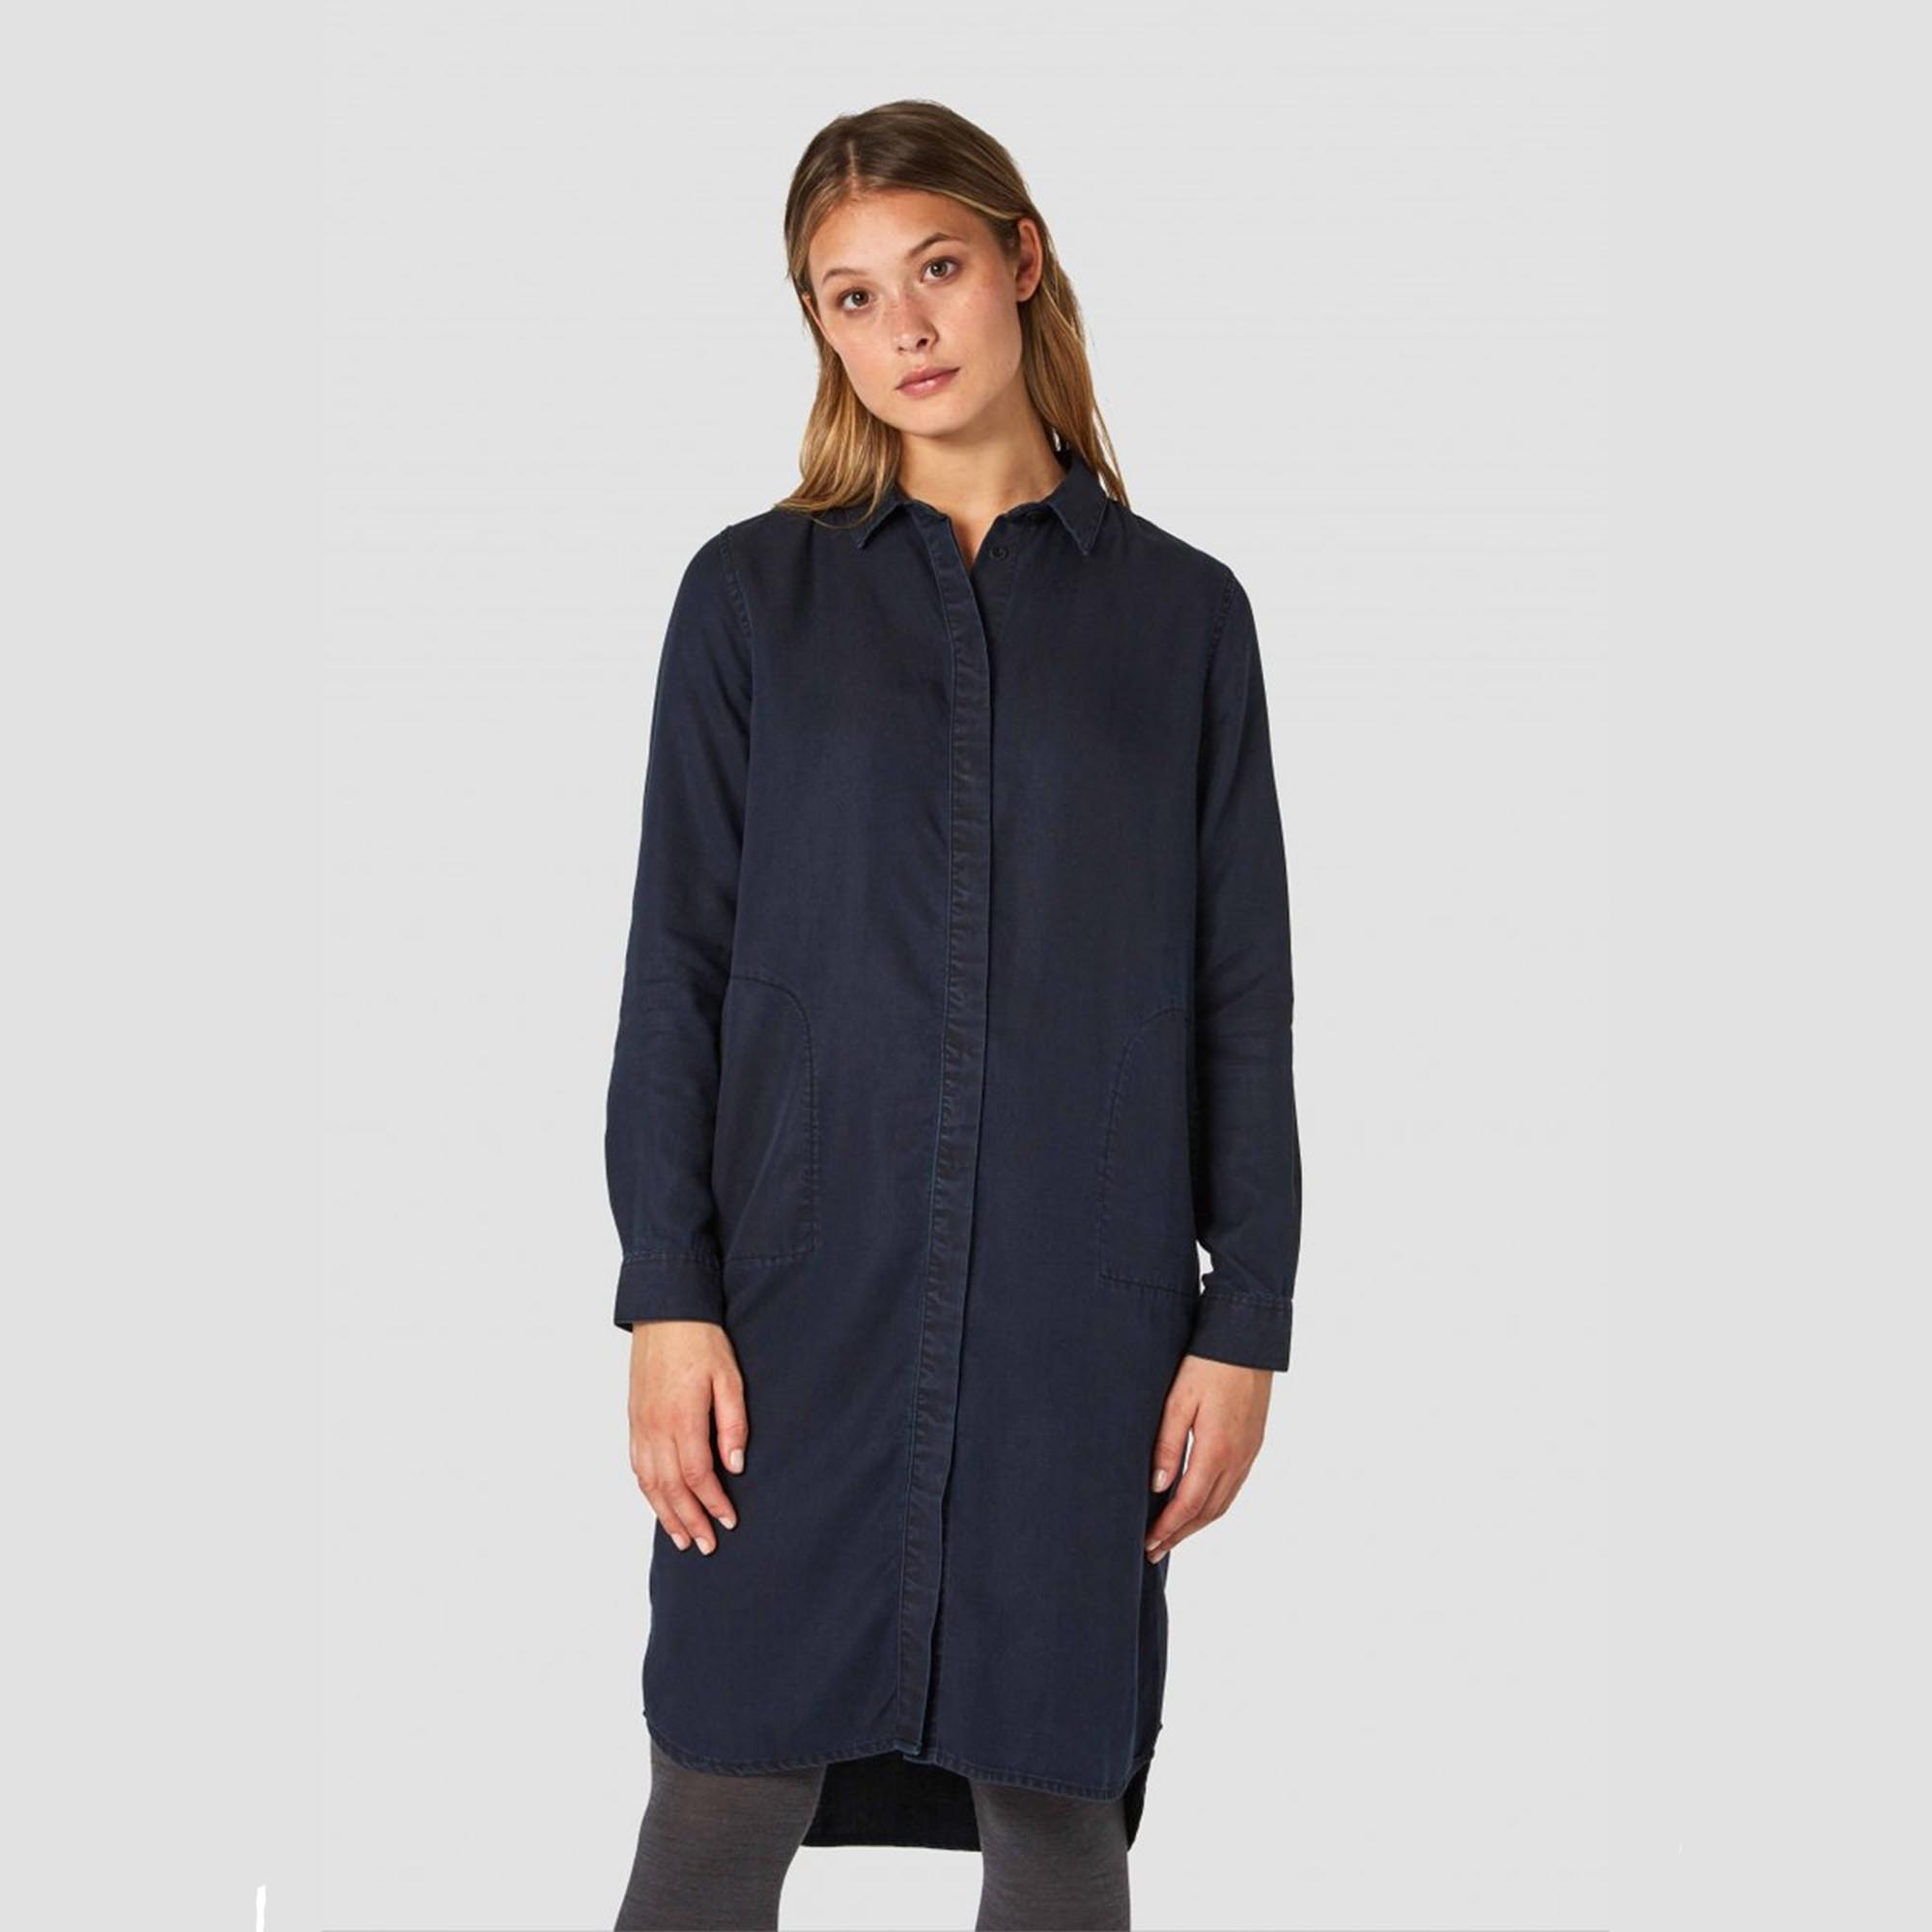 Kings Of Indigo- Priscilla- Shirt dress- ON SALE